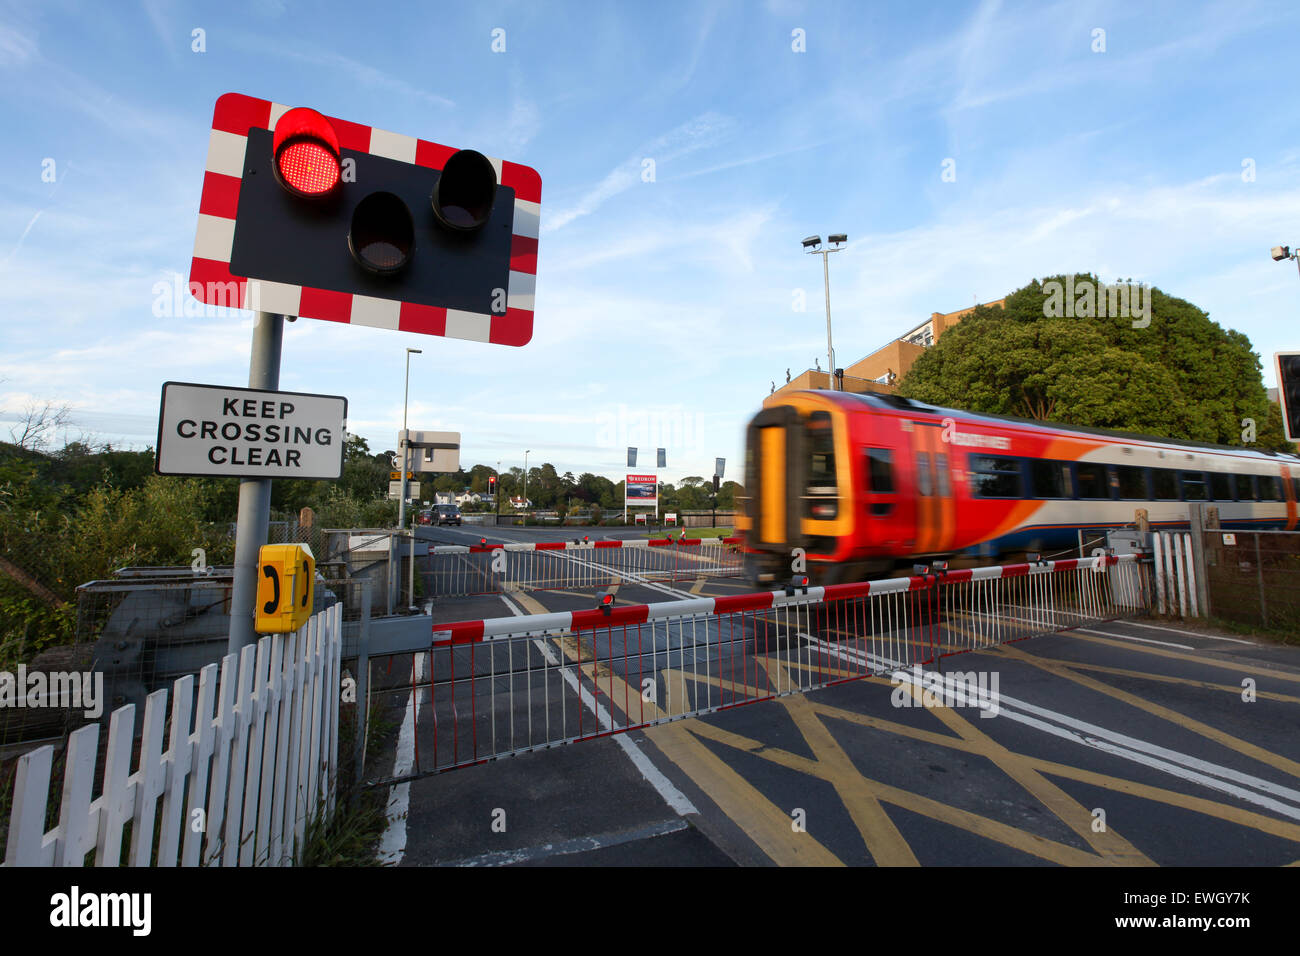 Un train dans le sud-ouest de Lymington railroad crossing Banque D'Images